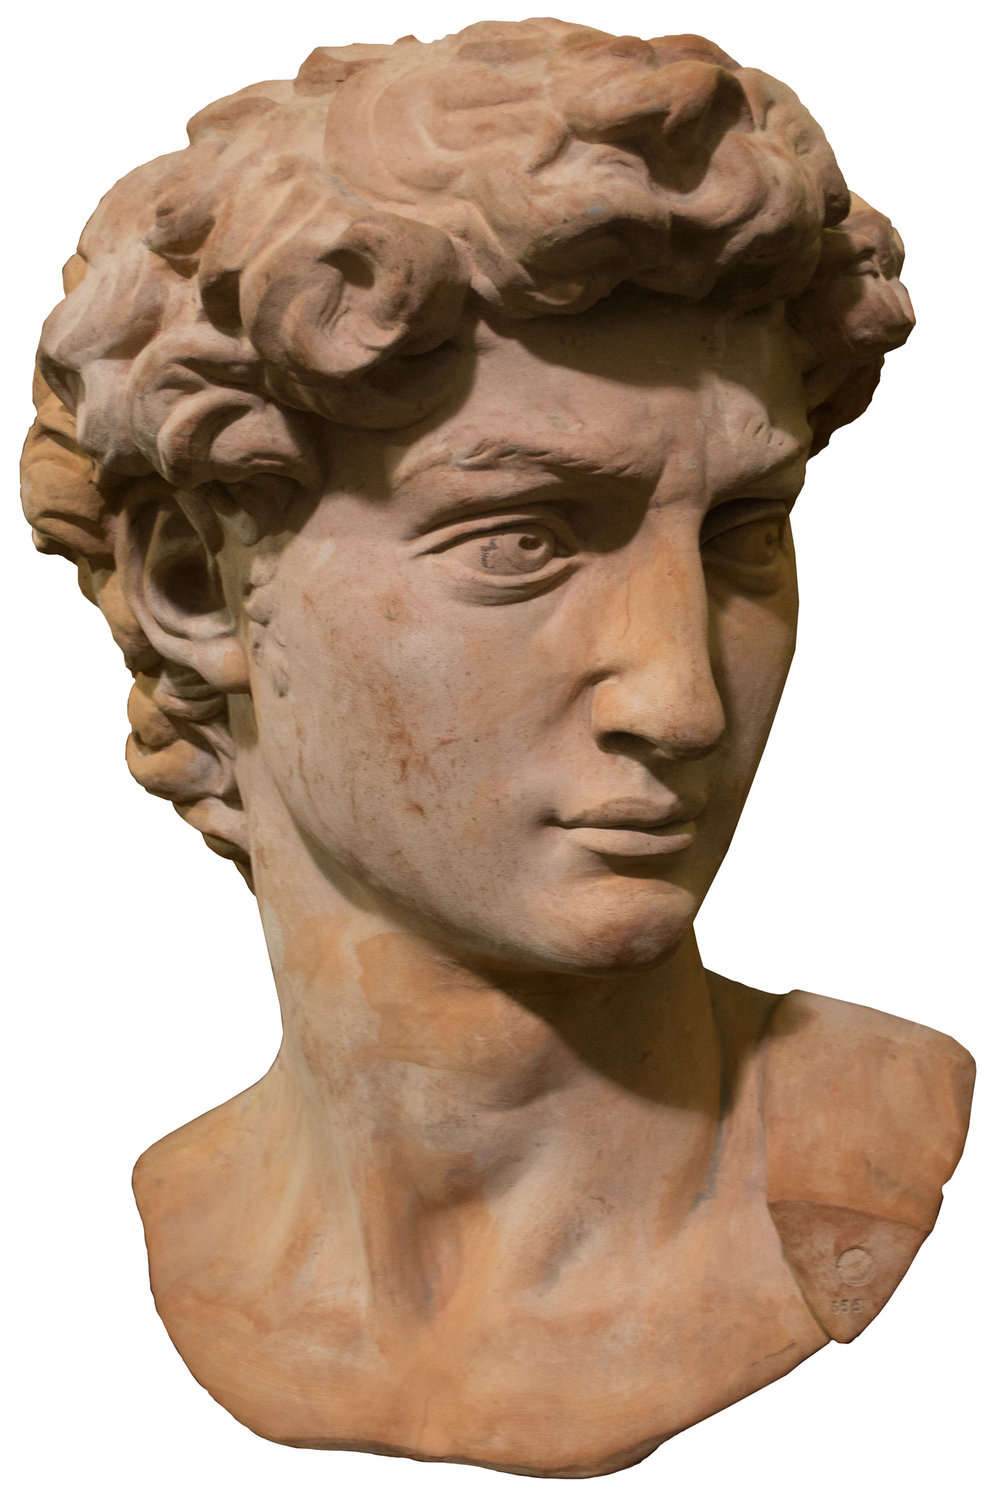 This monumental, terra cotta scale bust of Michelangelo's David (c. 1950 by V. Vincenzo) is one of the items we are donating to the auction benefitting the ICAA.